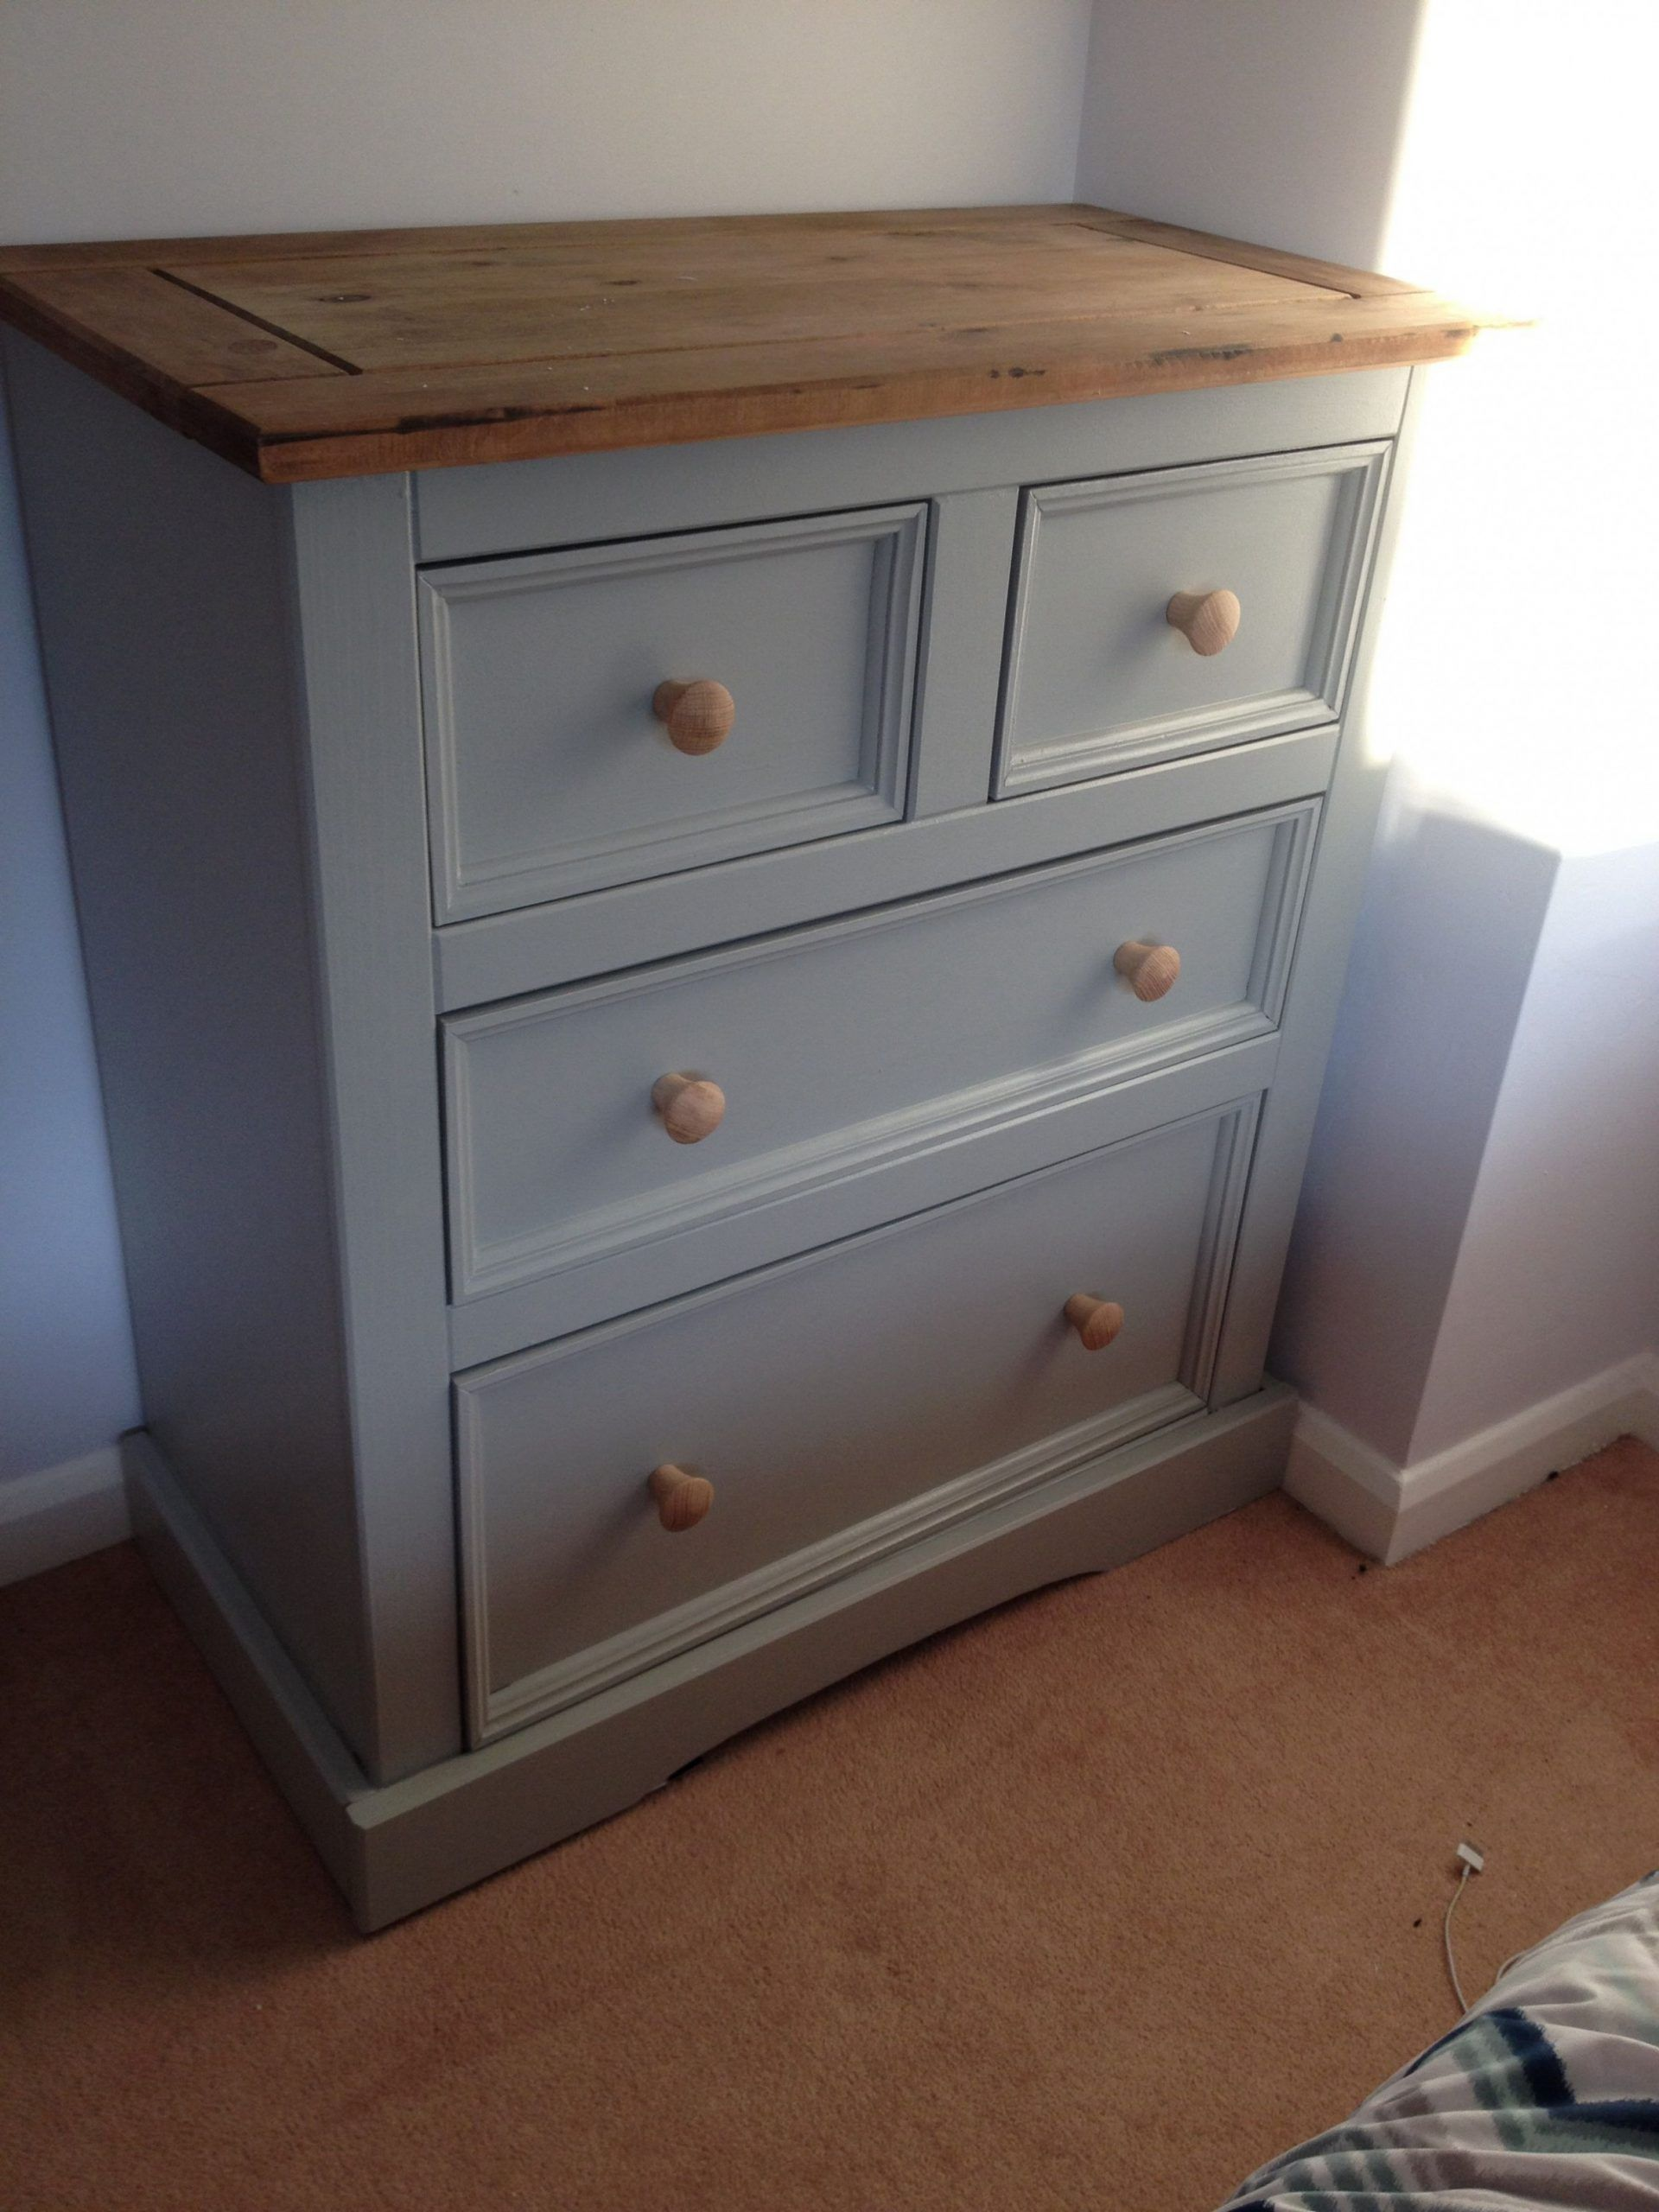 Painted Pine Bedroom Furniture Ideas In 2020 With Images Pine Bedroom Furniture Grey Painted Furniture Pine Furniture Makeover